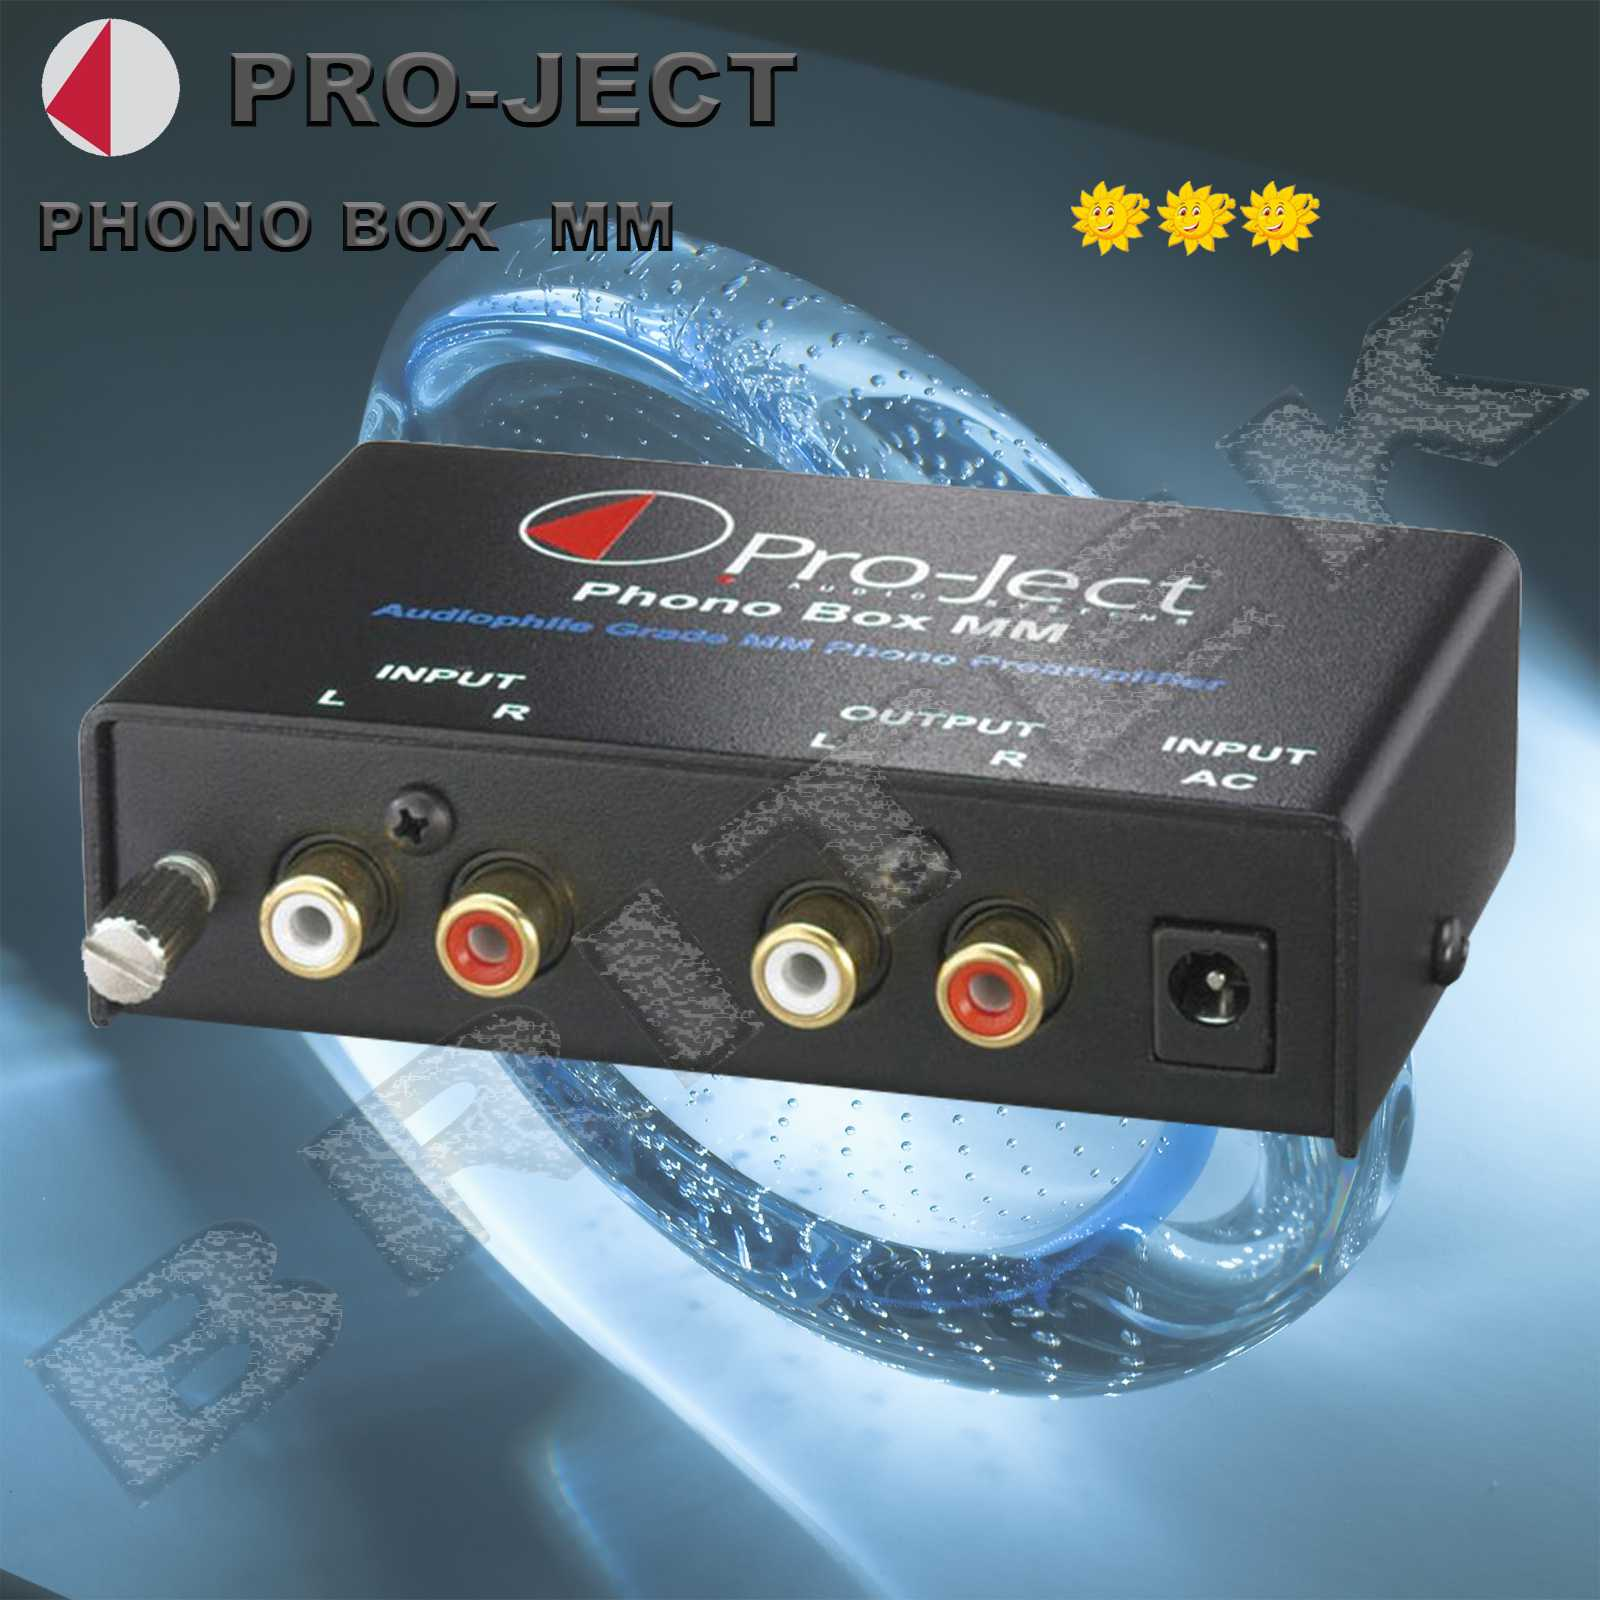 PRO-JECT PHONO BOX-MM